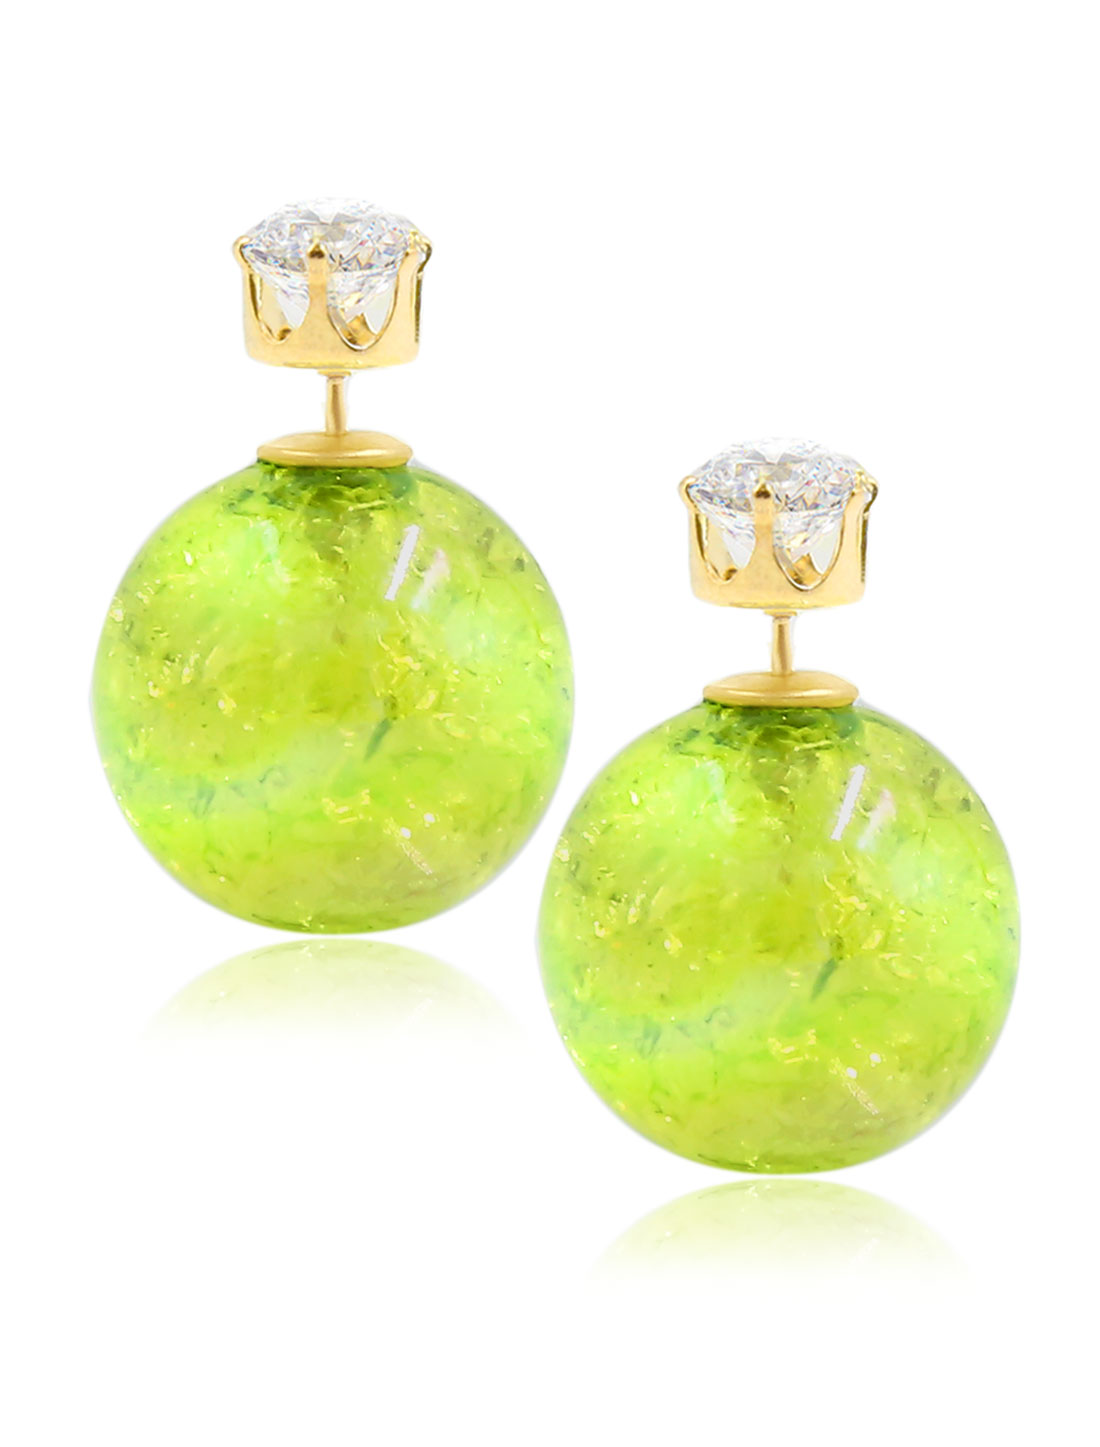 Fashion Women Elegant Double Sides Zircon Faux Crystal Ball Illusion-colour Earrings Ear Stud 1 Pair Green